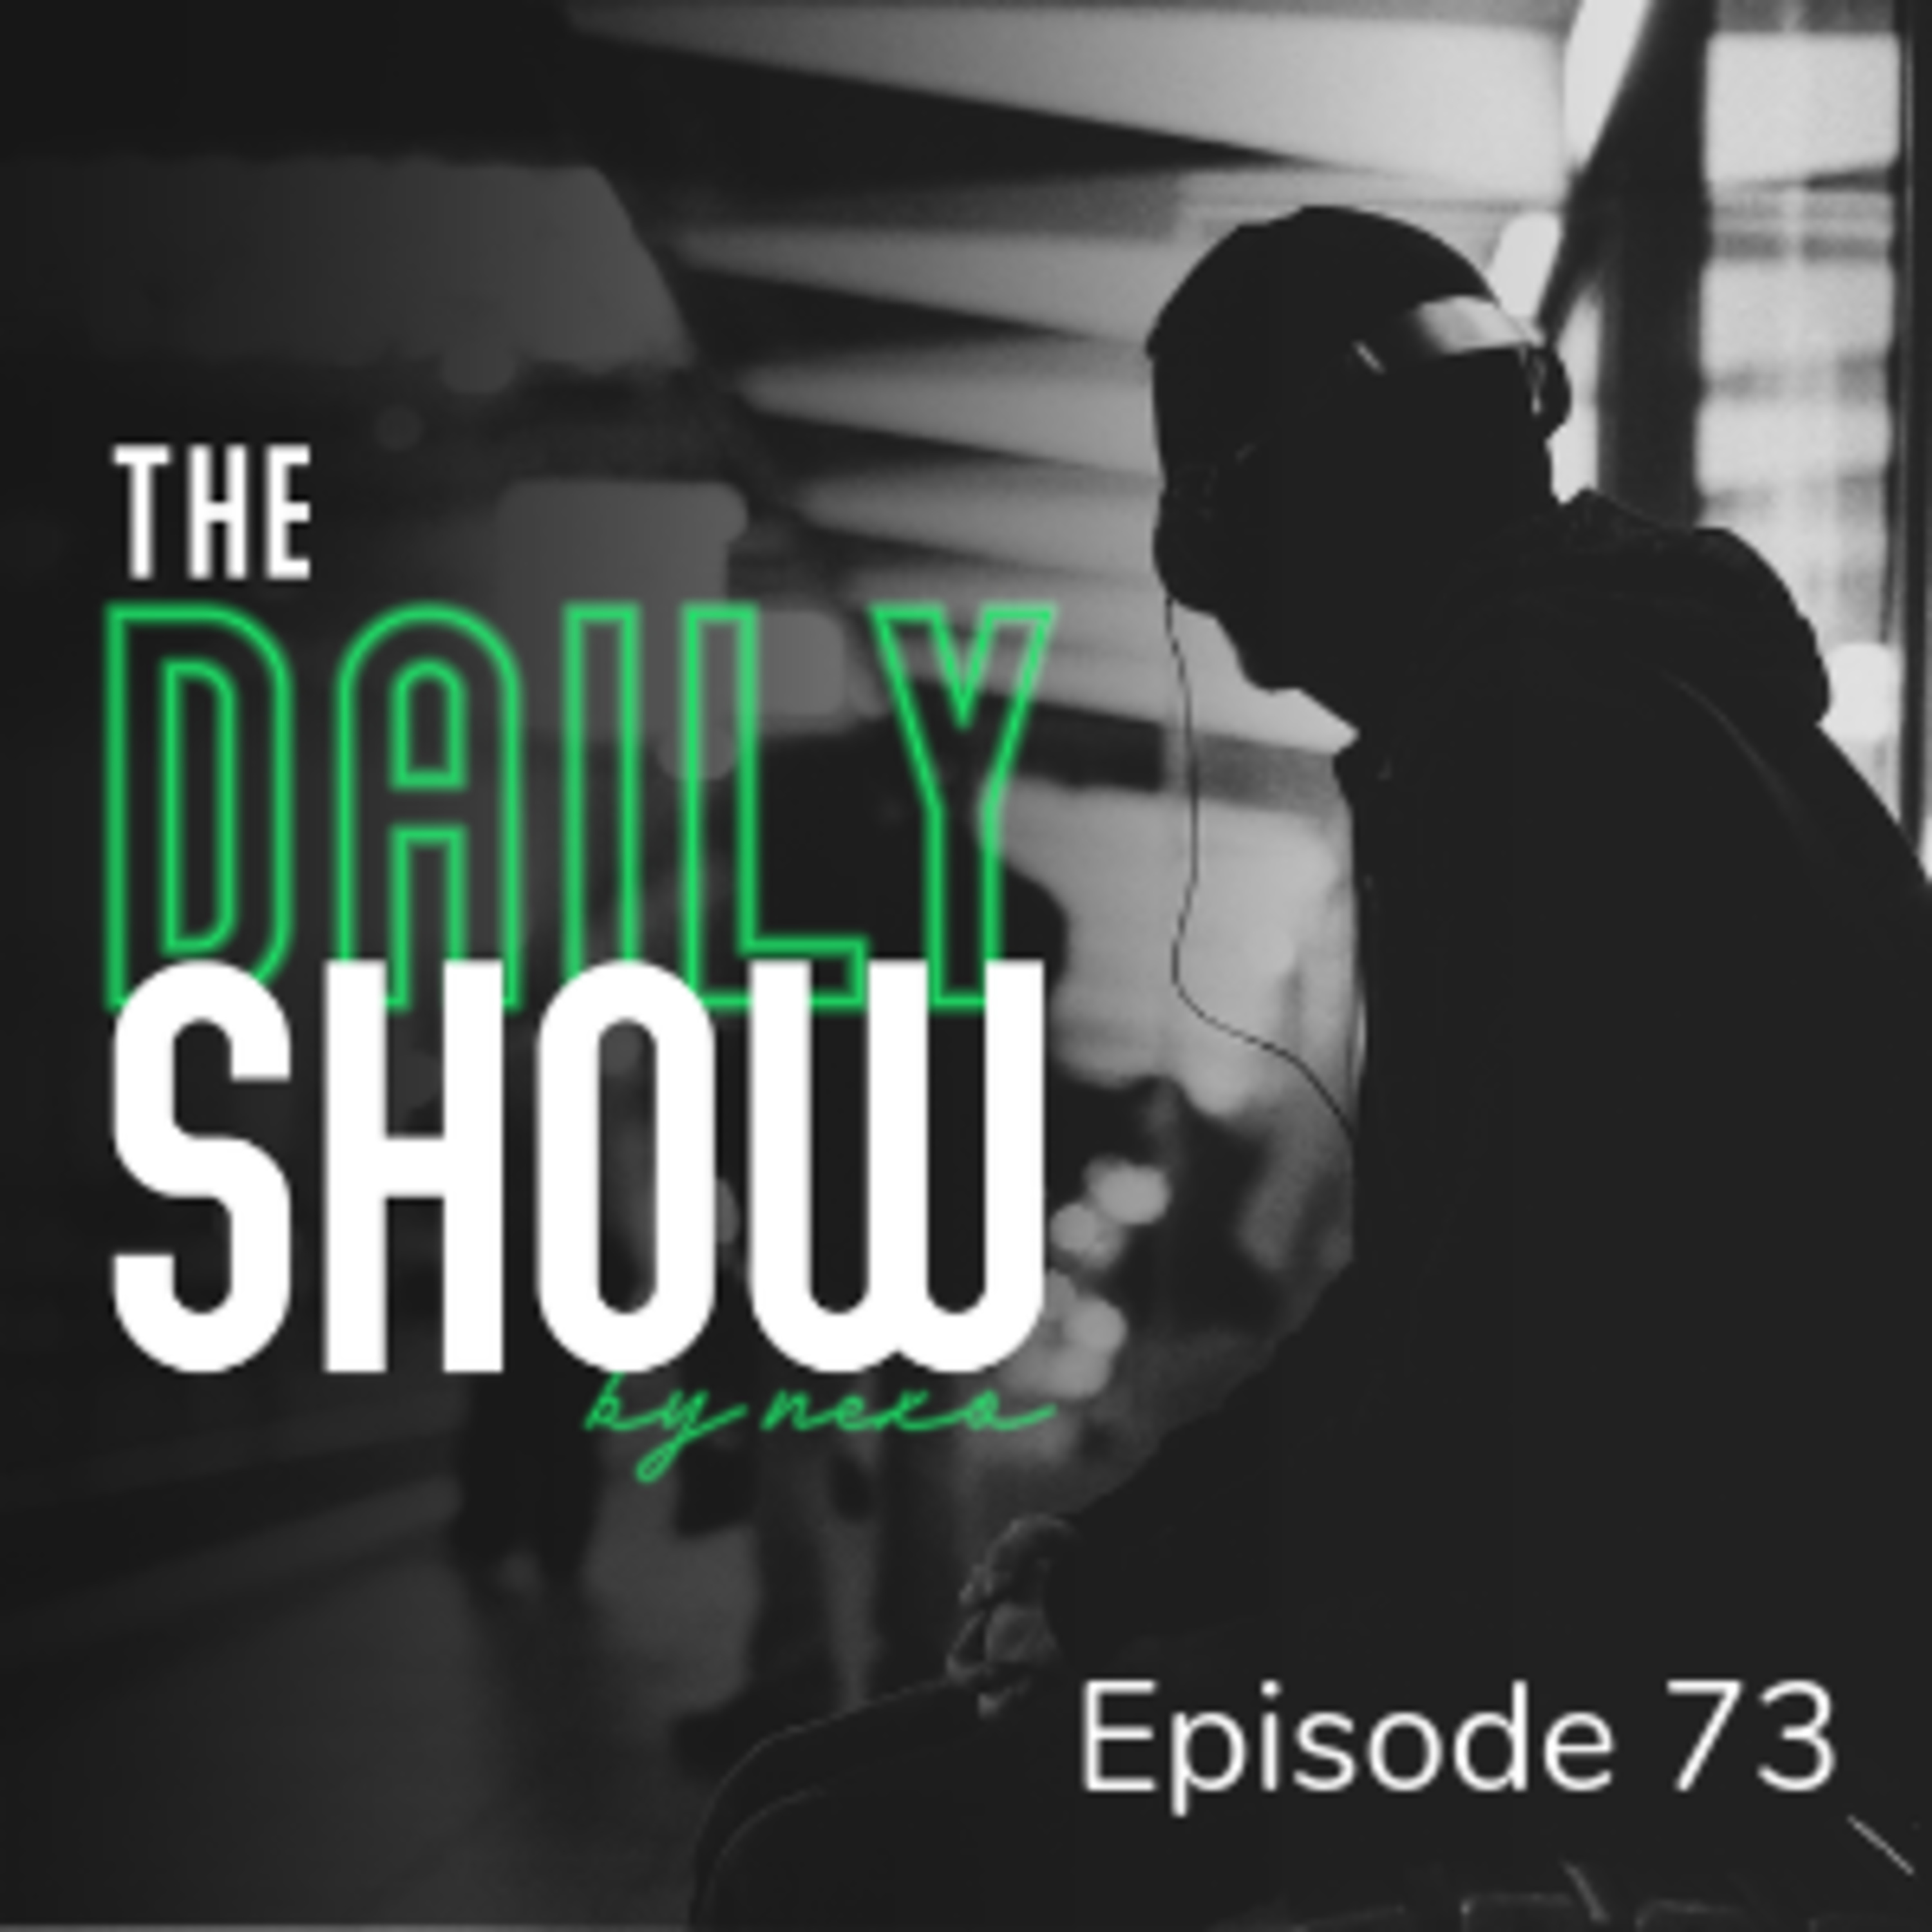 Daily Show: Episode 73 - Why Promotion is King 👑